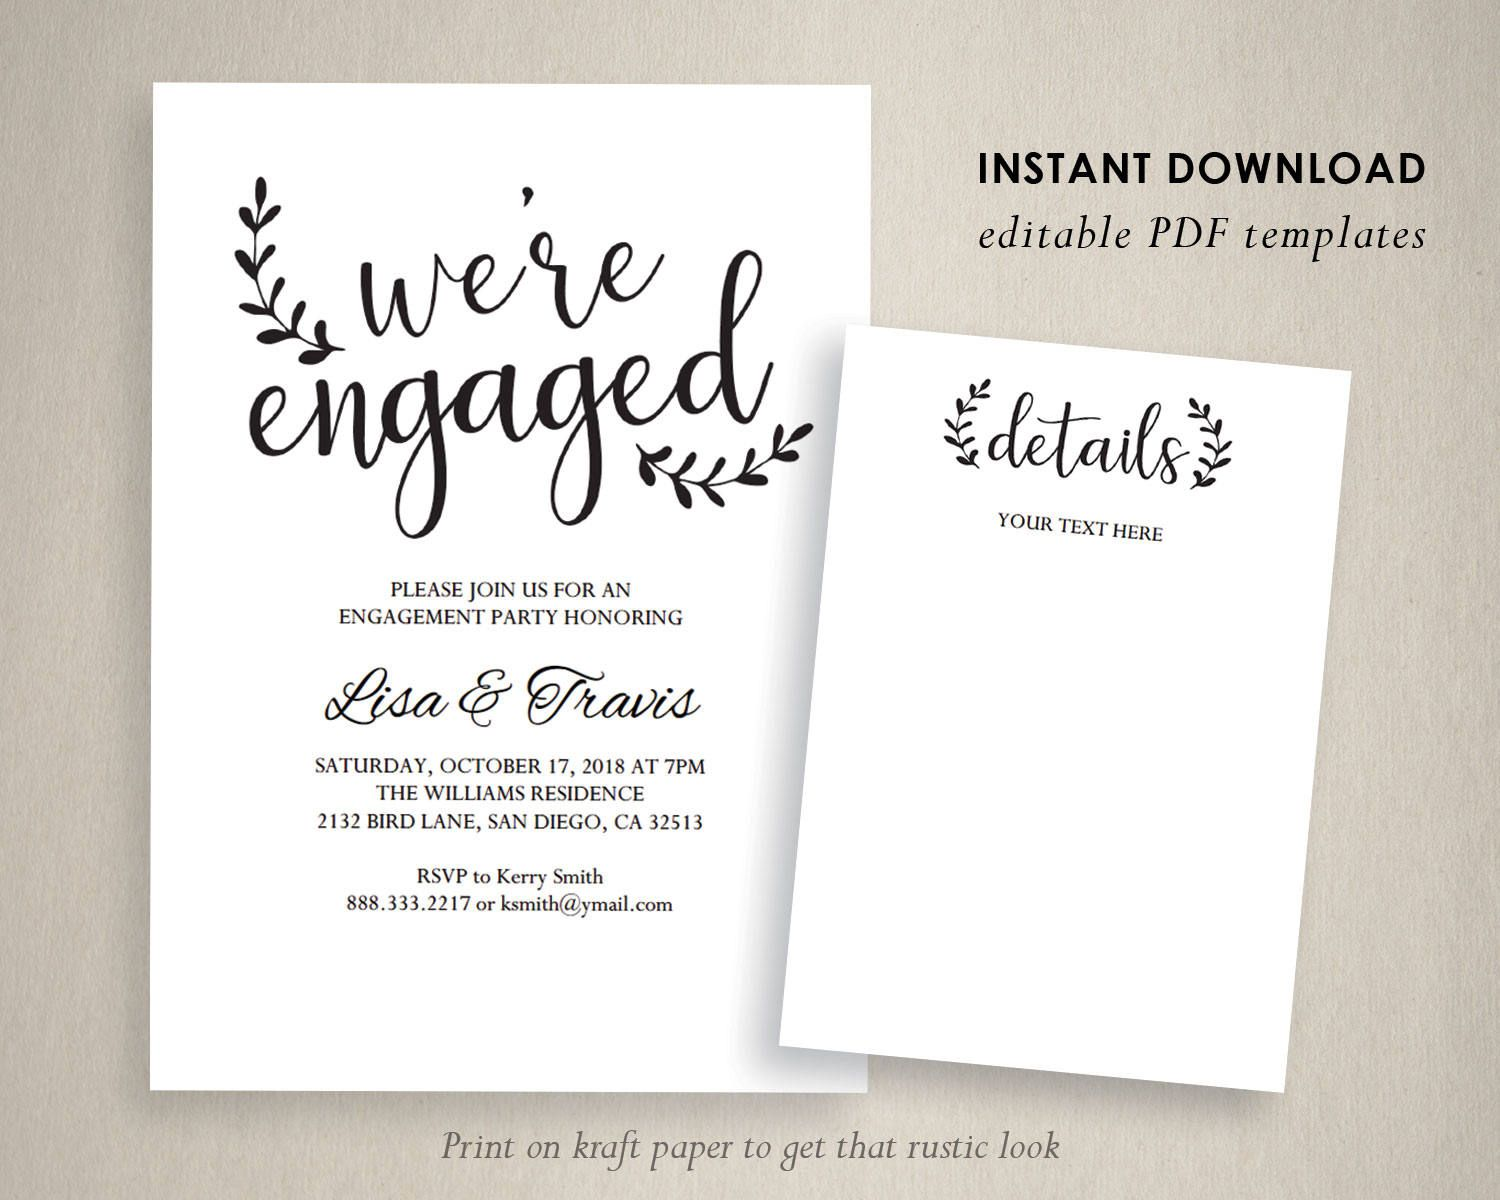 Engagement party invitation template We are engaged | Rustic Wedding ...